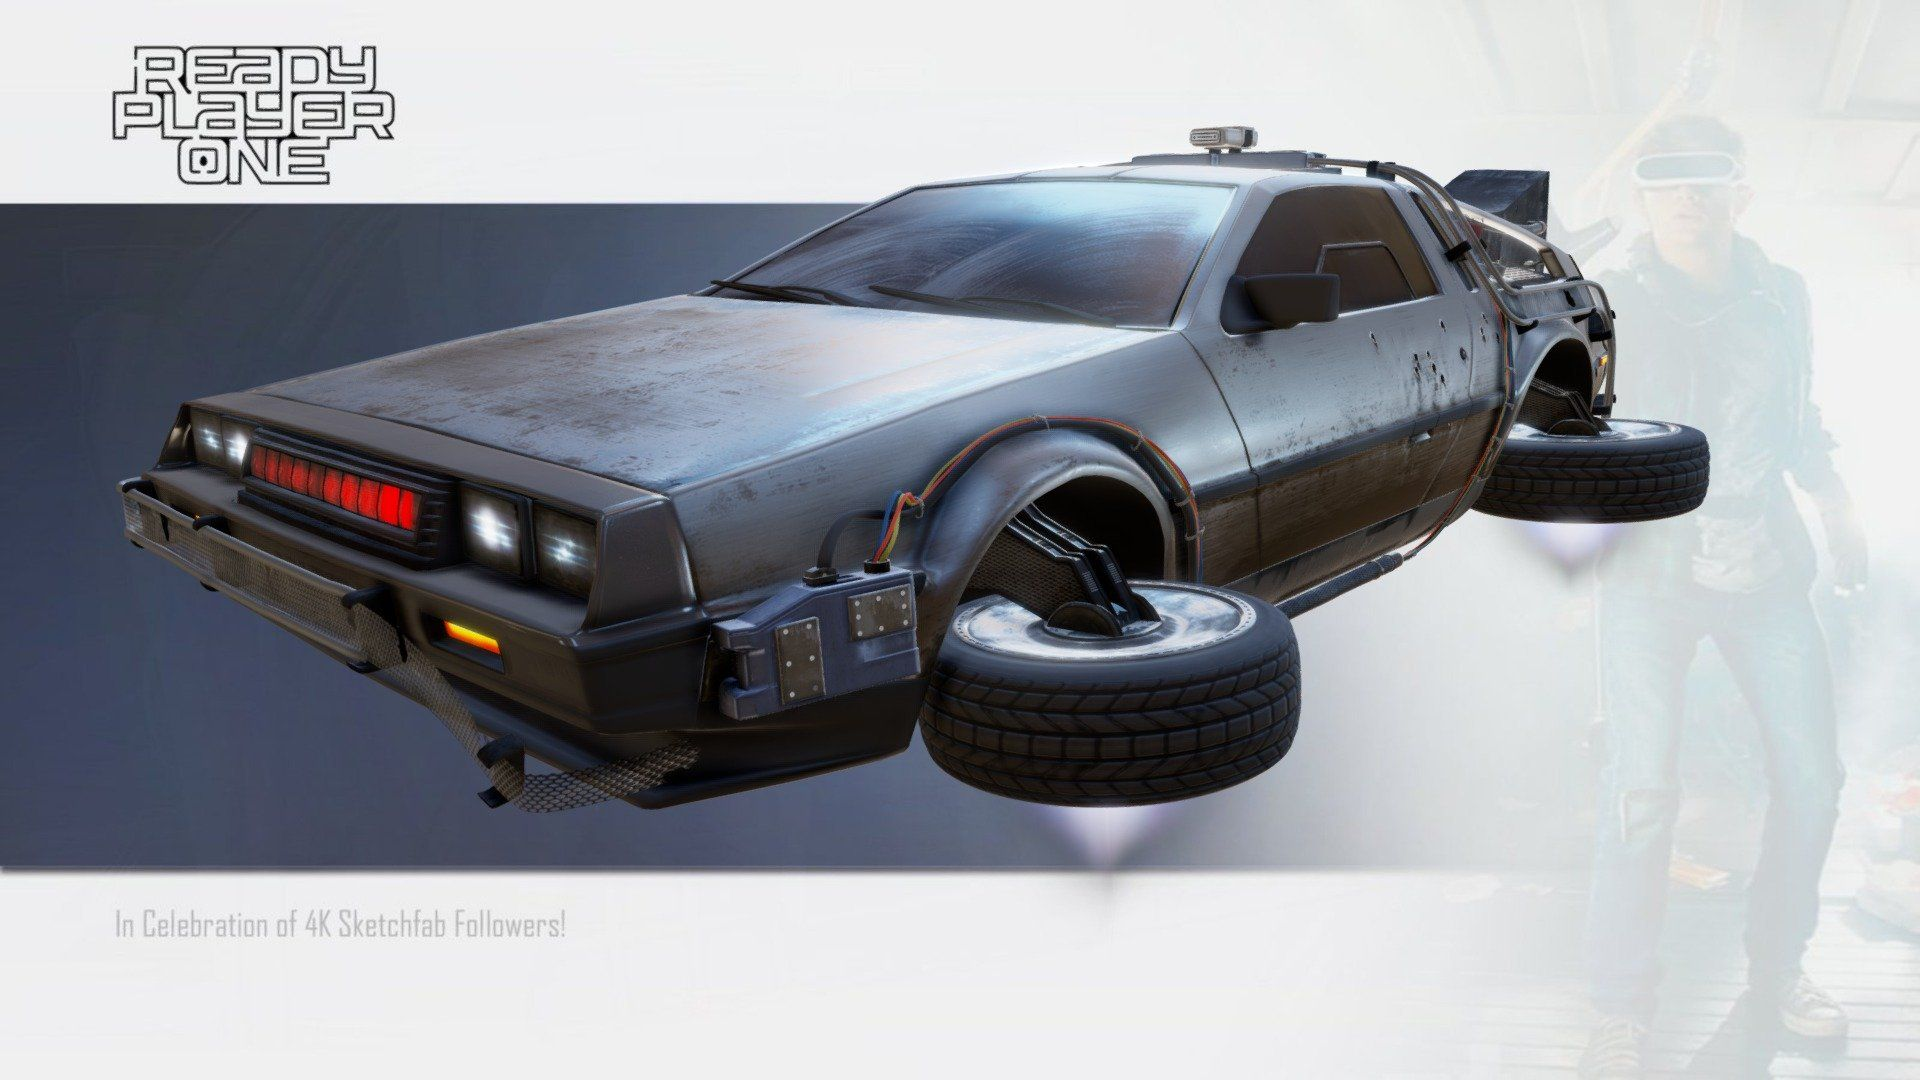 Ready Player One Parzival S Delorean By Jculley3d Delorean